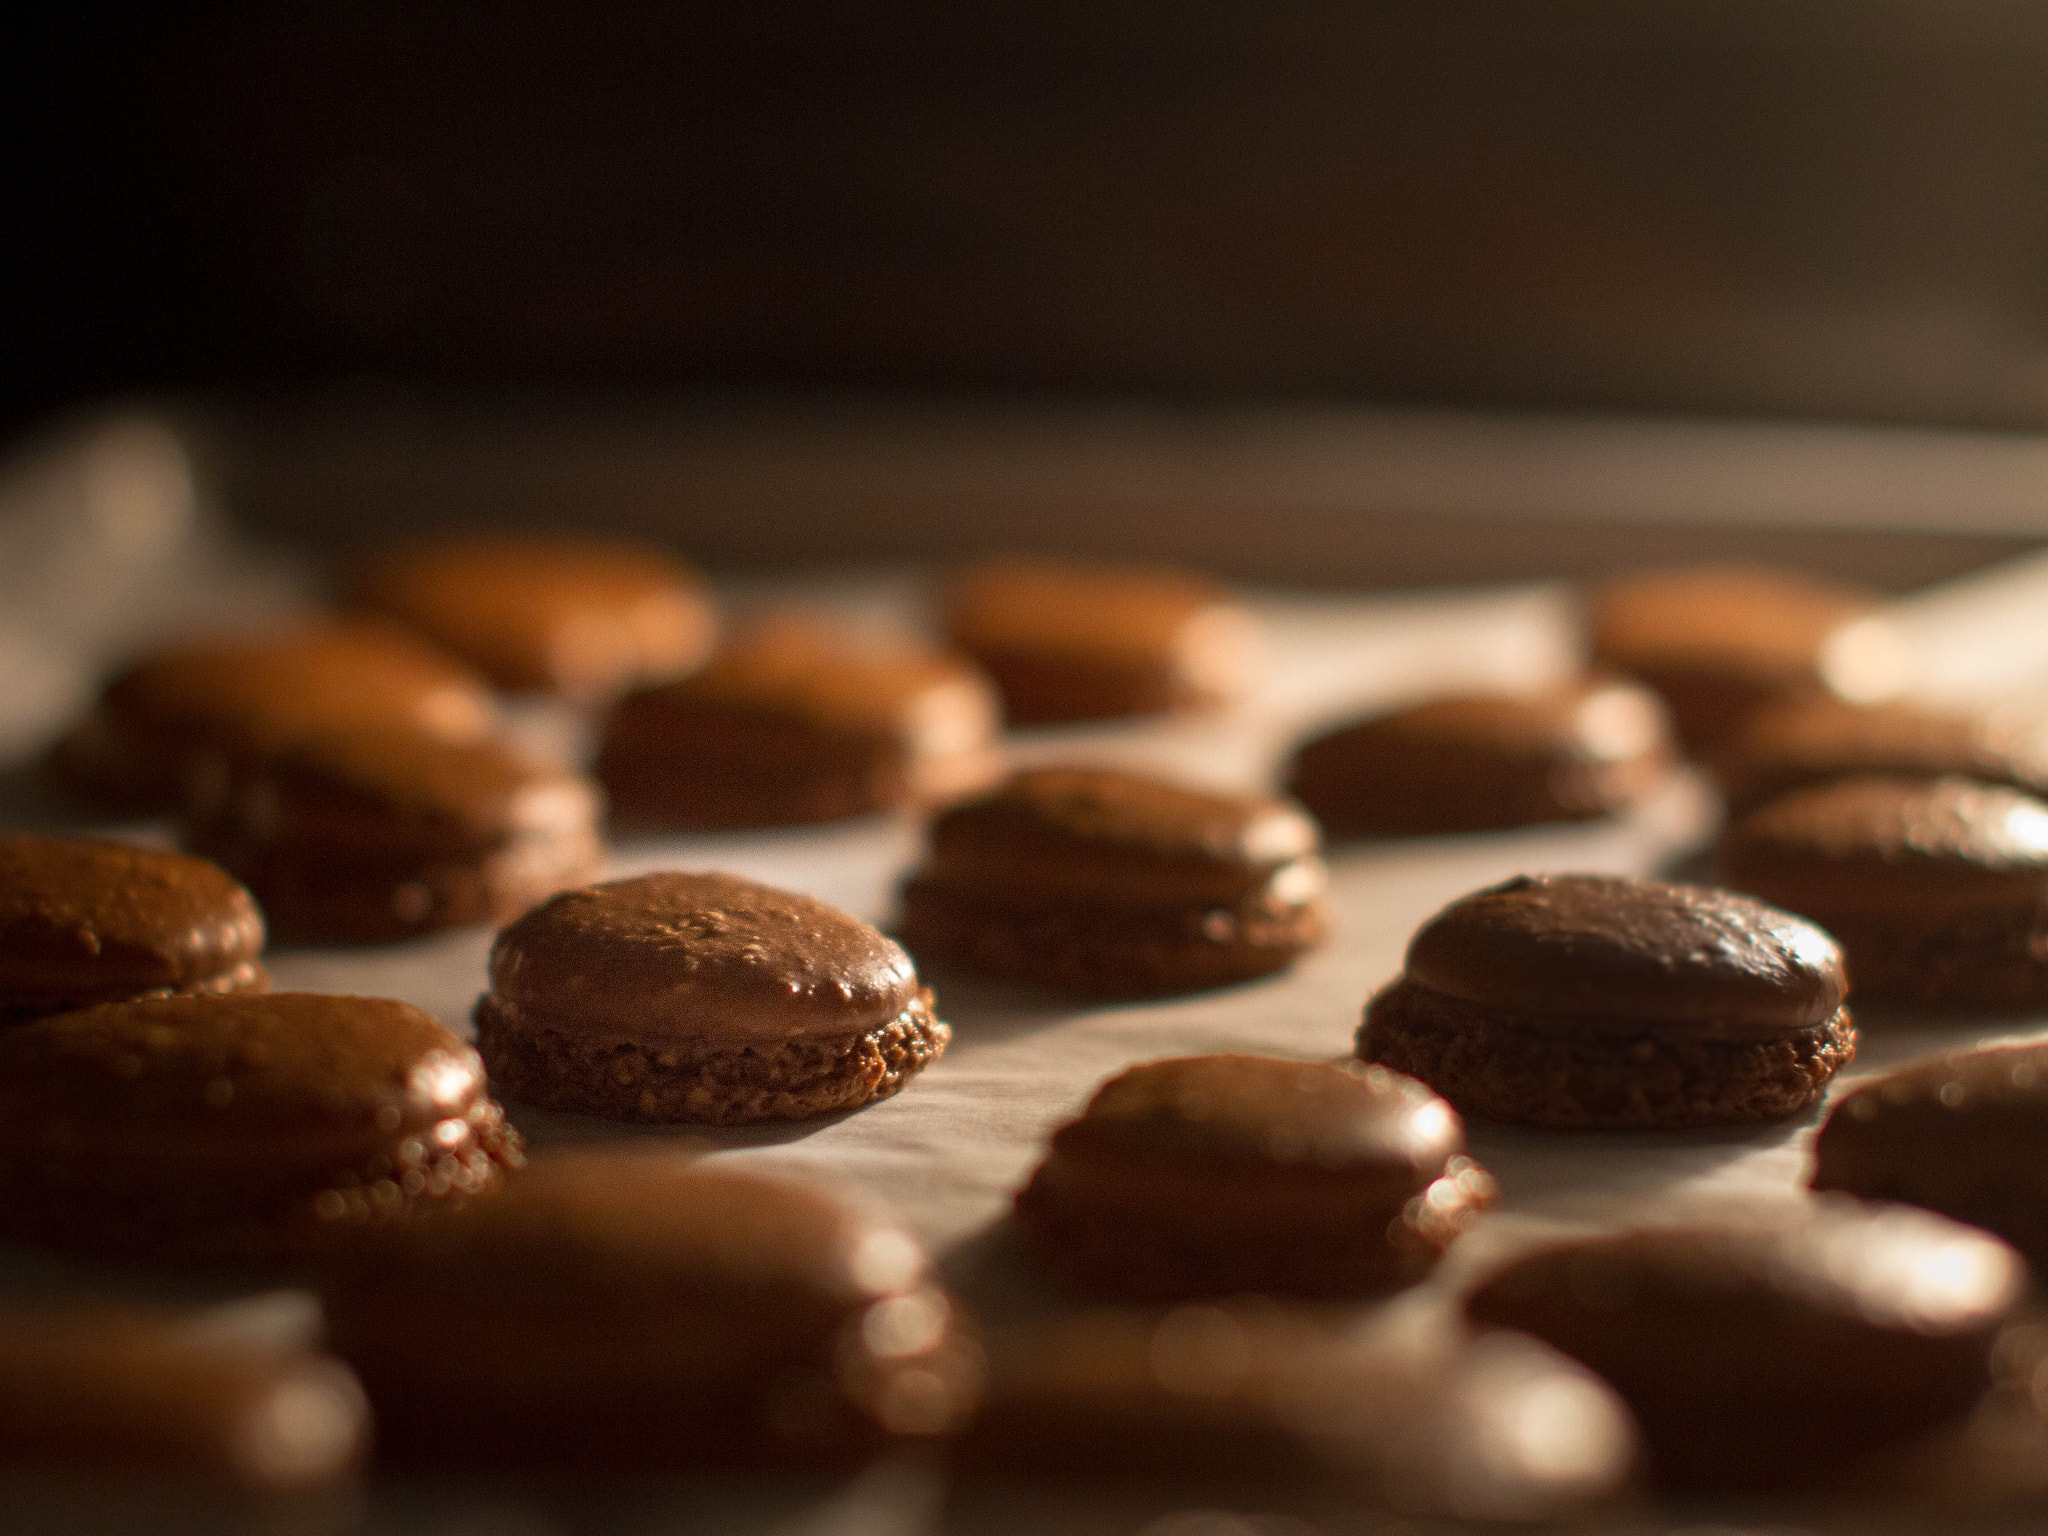 Photograph Baking by Ash Furrow on 500px